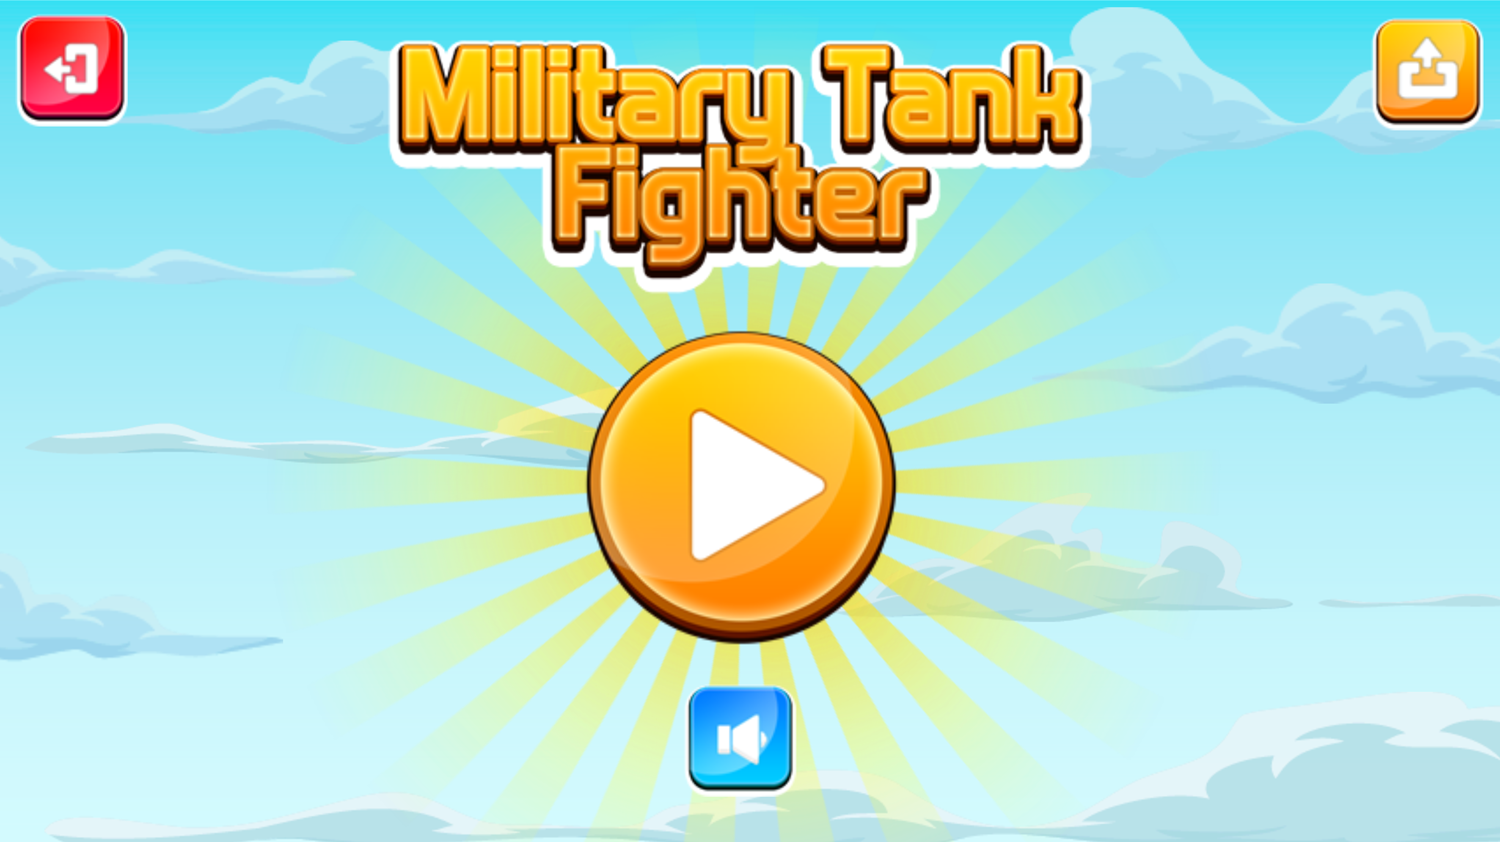 Military Tank Fighter Game Welcome Screenshot.